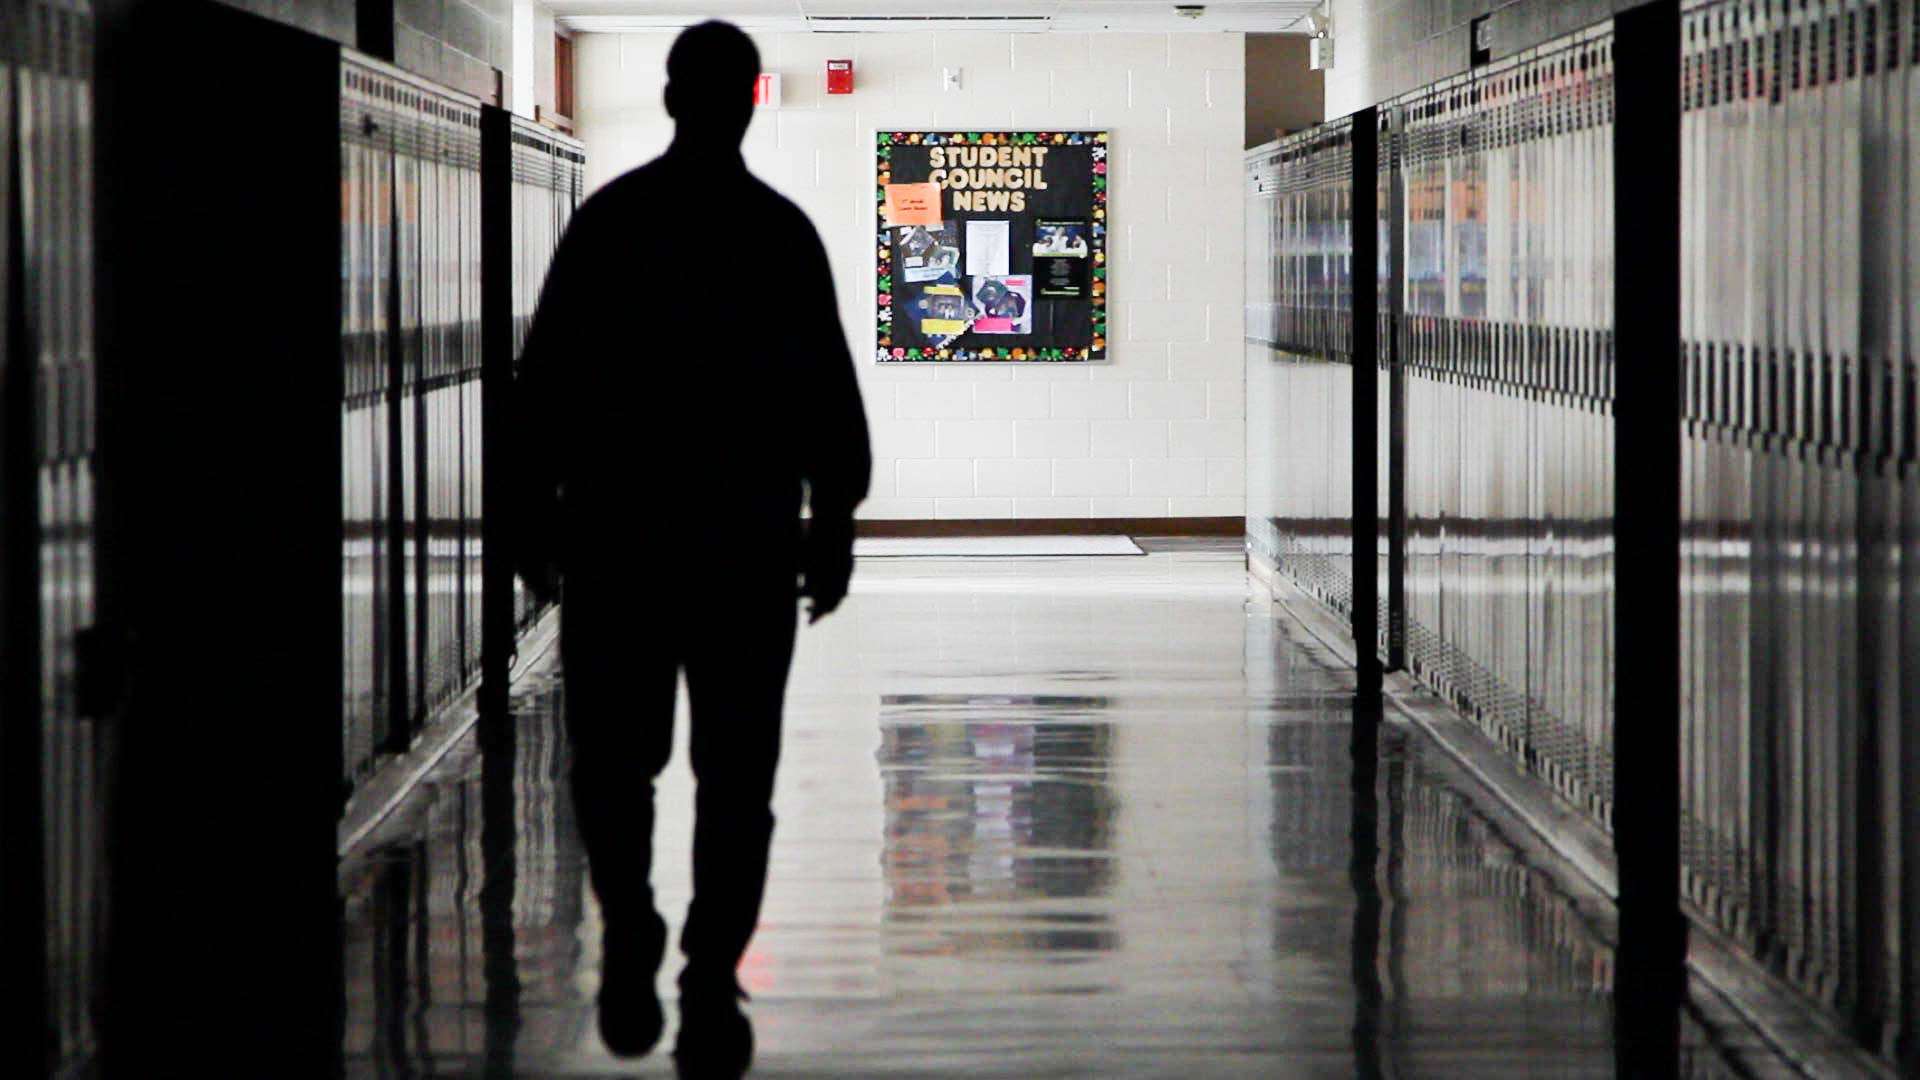 A student walking down a hallway.